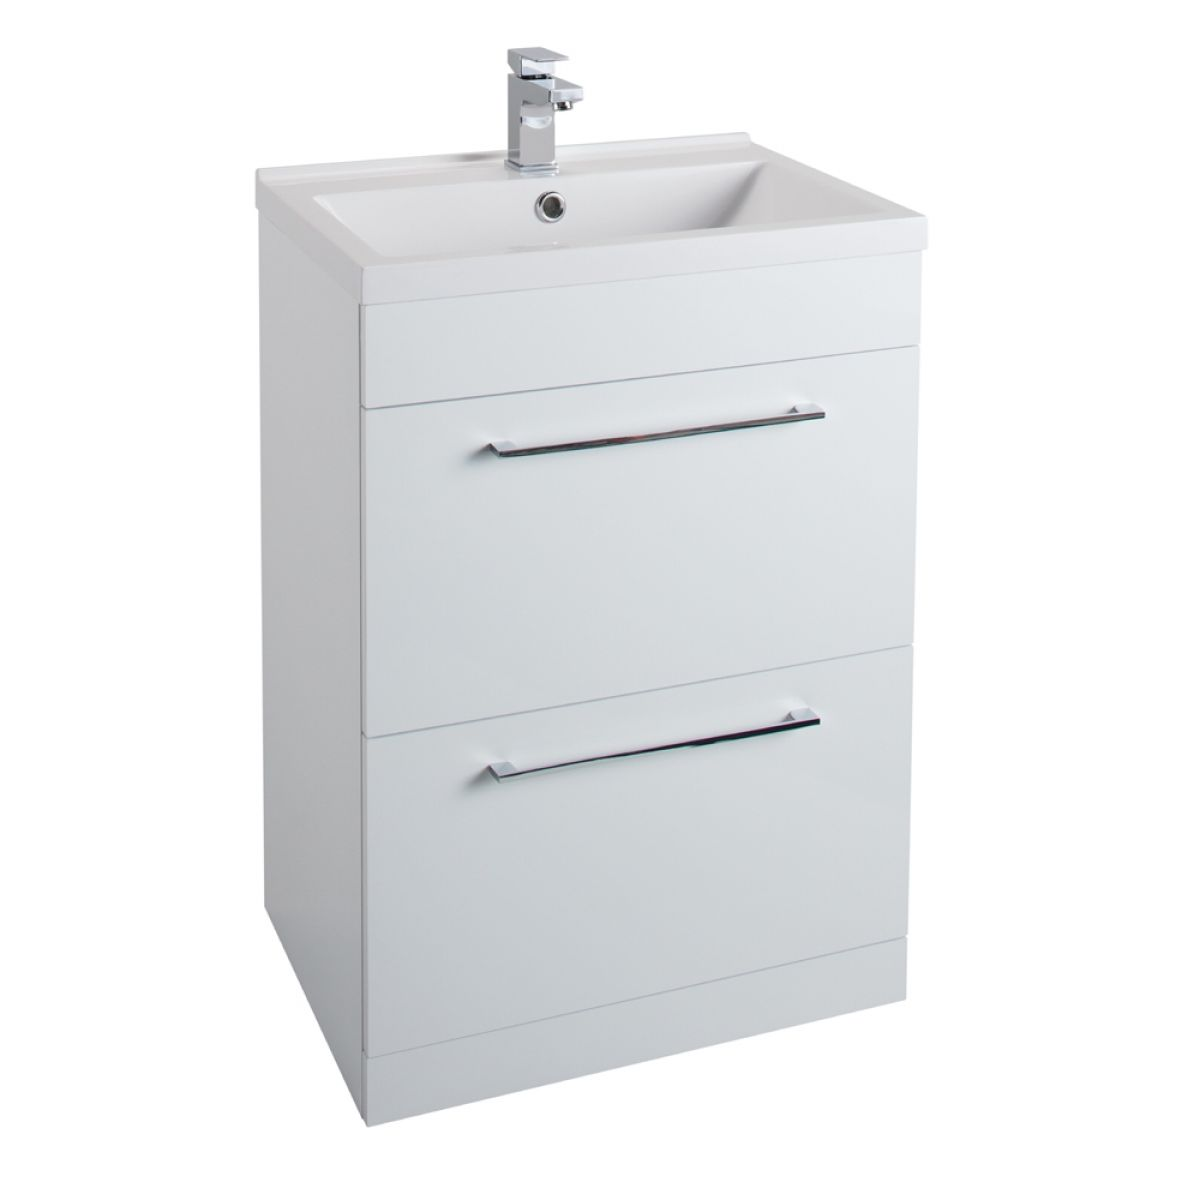 Cassellie Idon Gloss White 2 Drawer Vanity Unit with 600mm